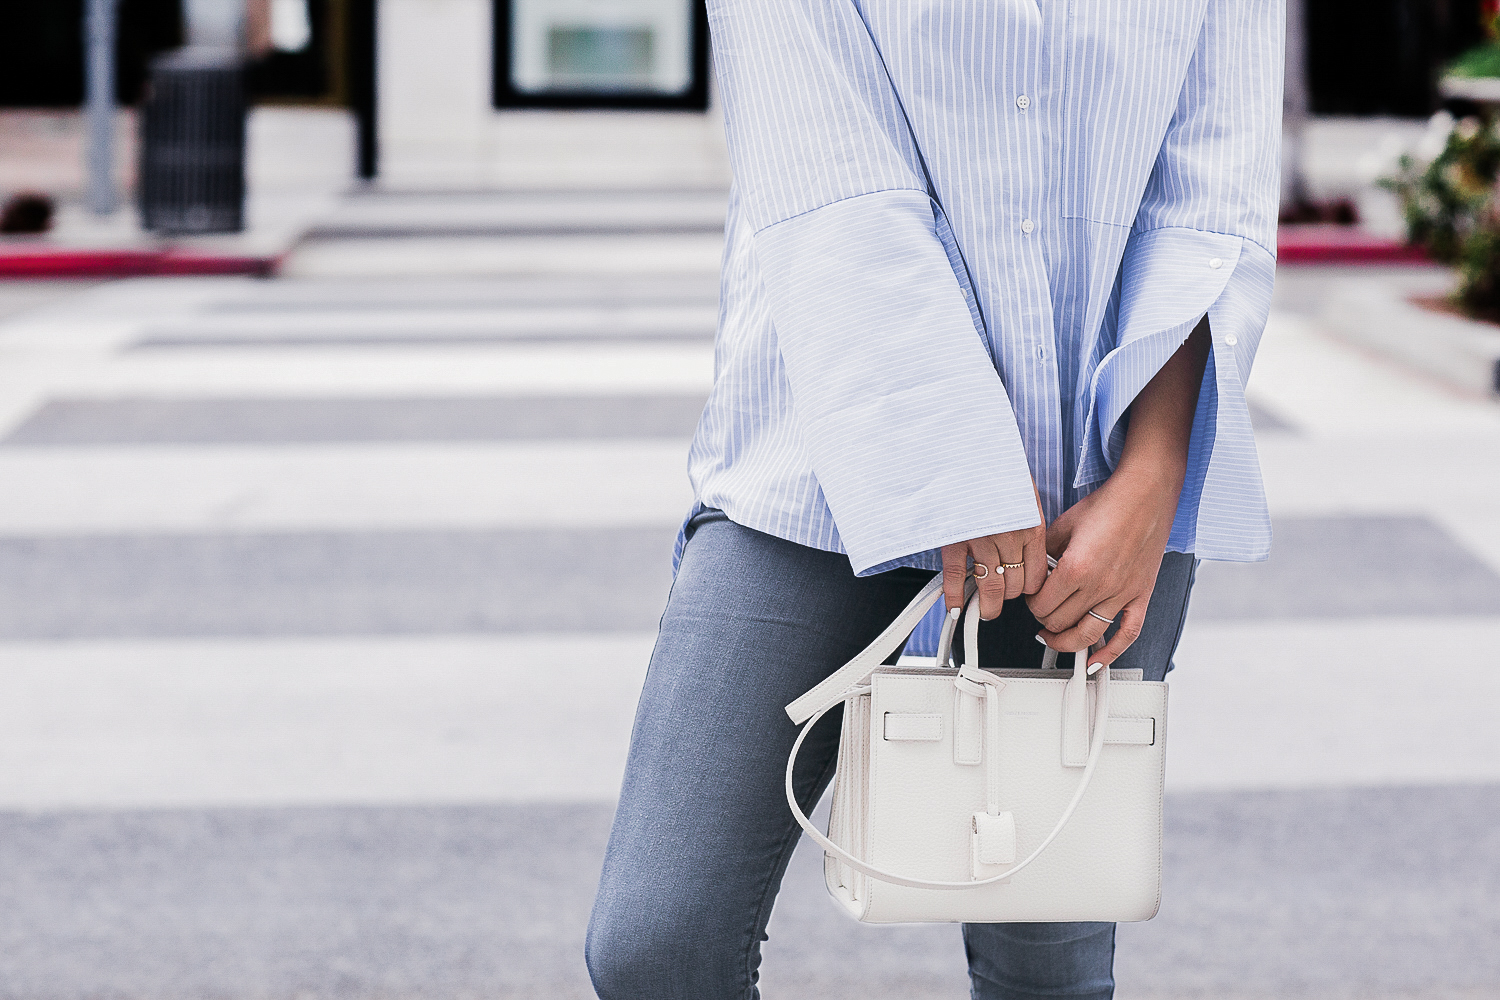 Style MBA wears oversized dress shirt and YSL bag